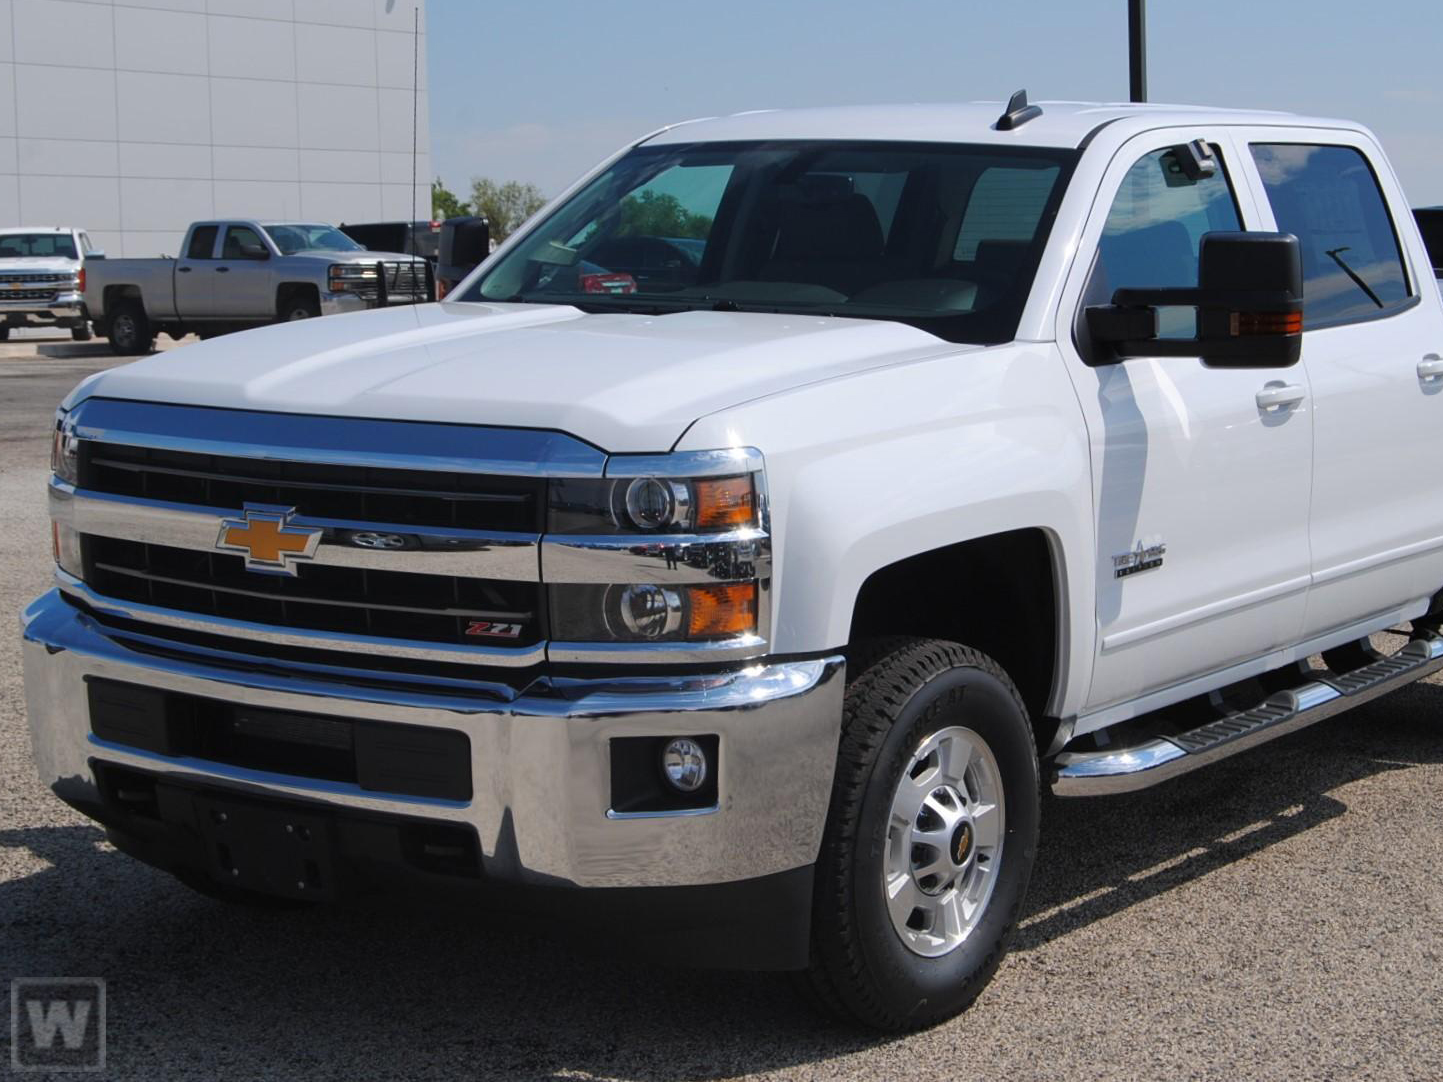 2019 Silverado 2500 Crew Cab 4x4,  Pickup #B19100277 - photo 1